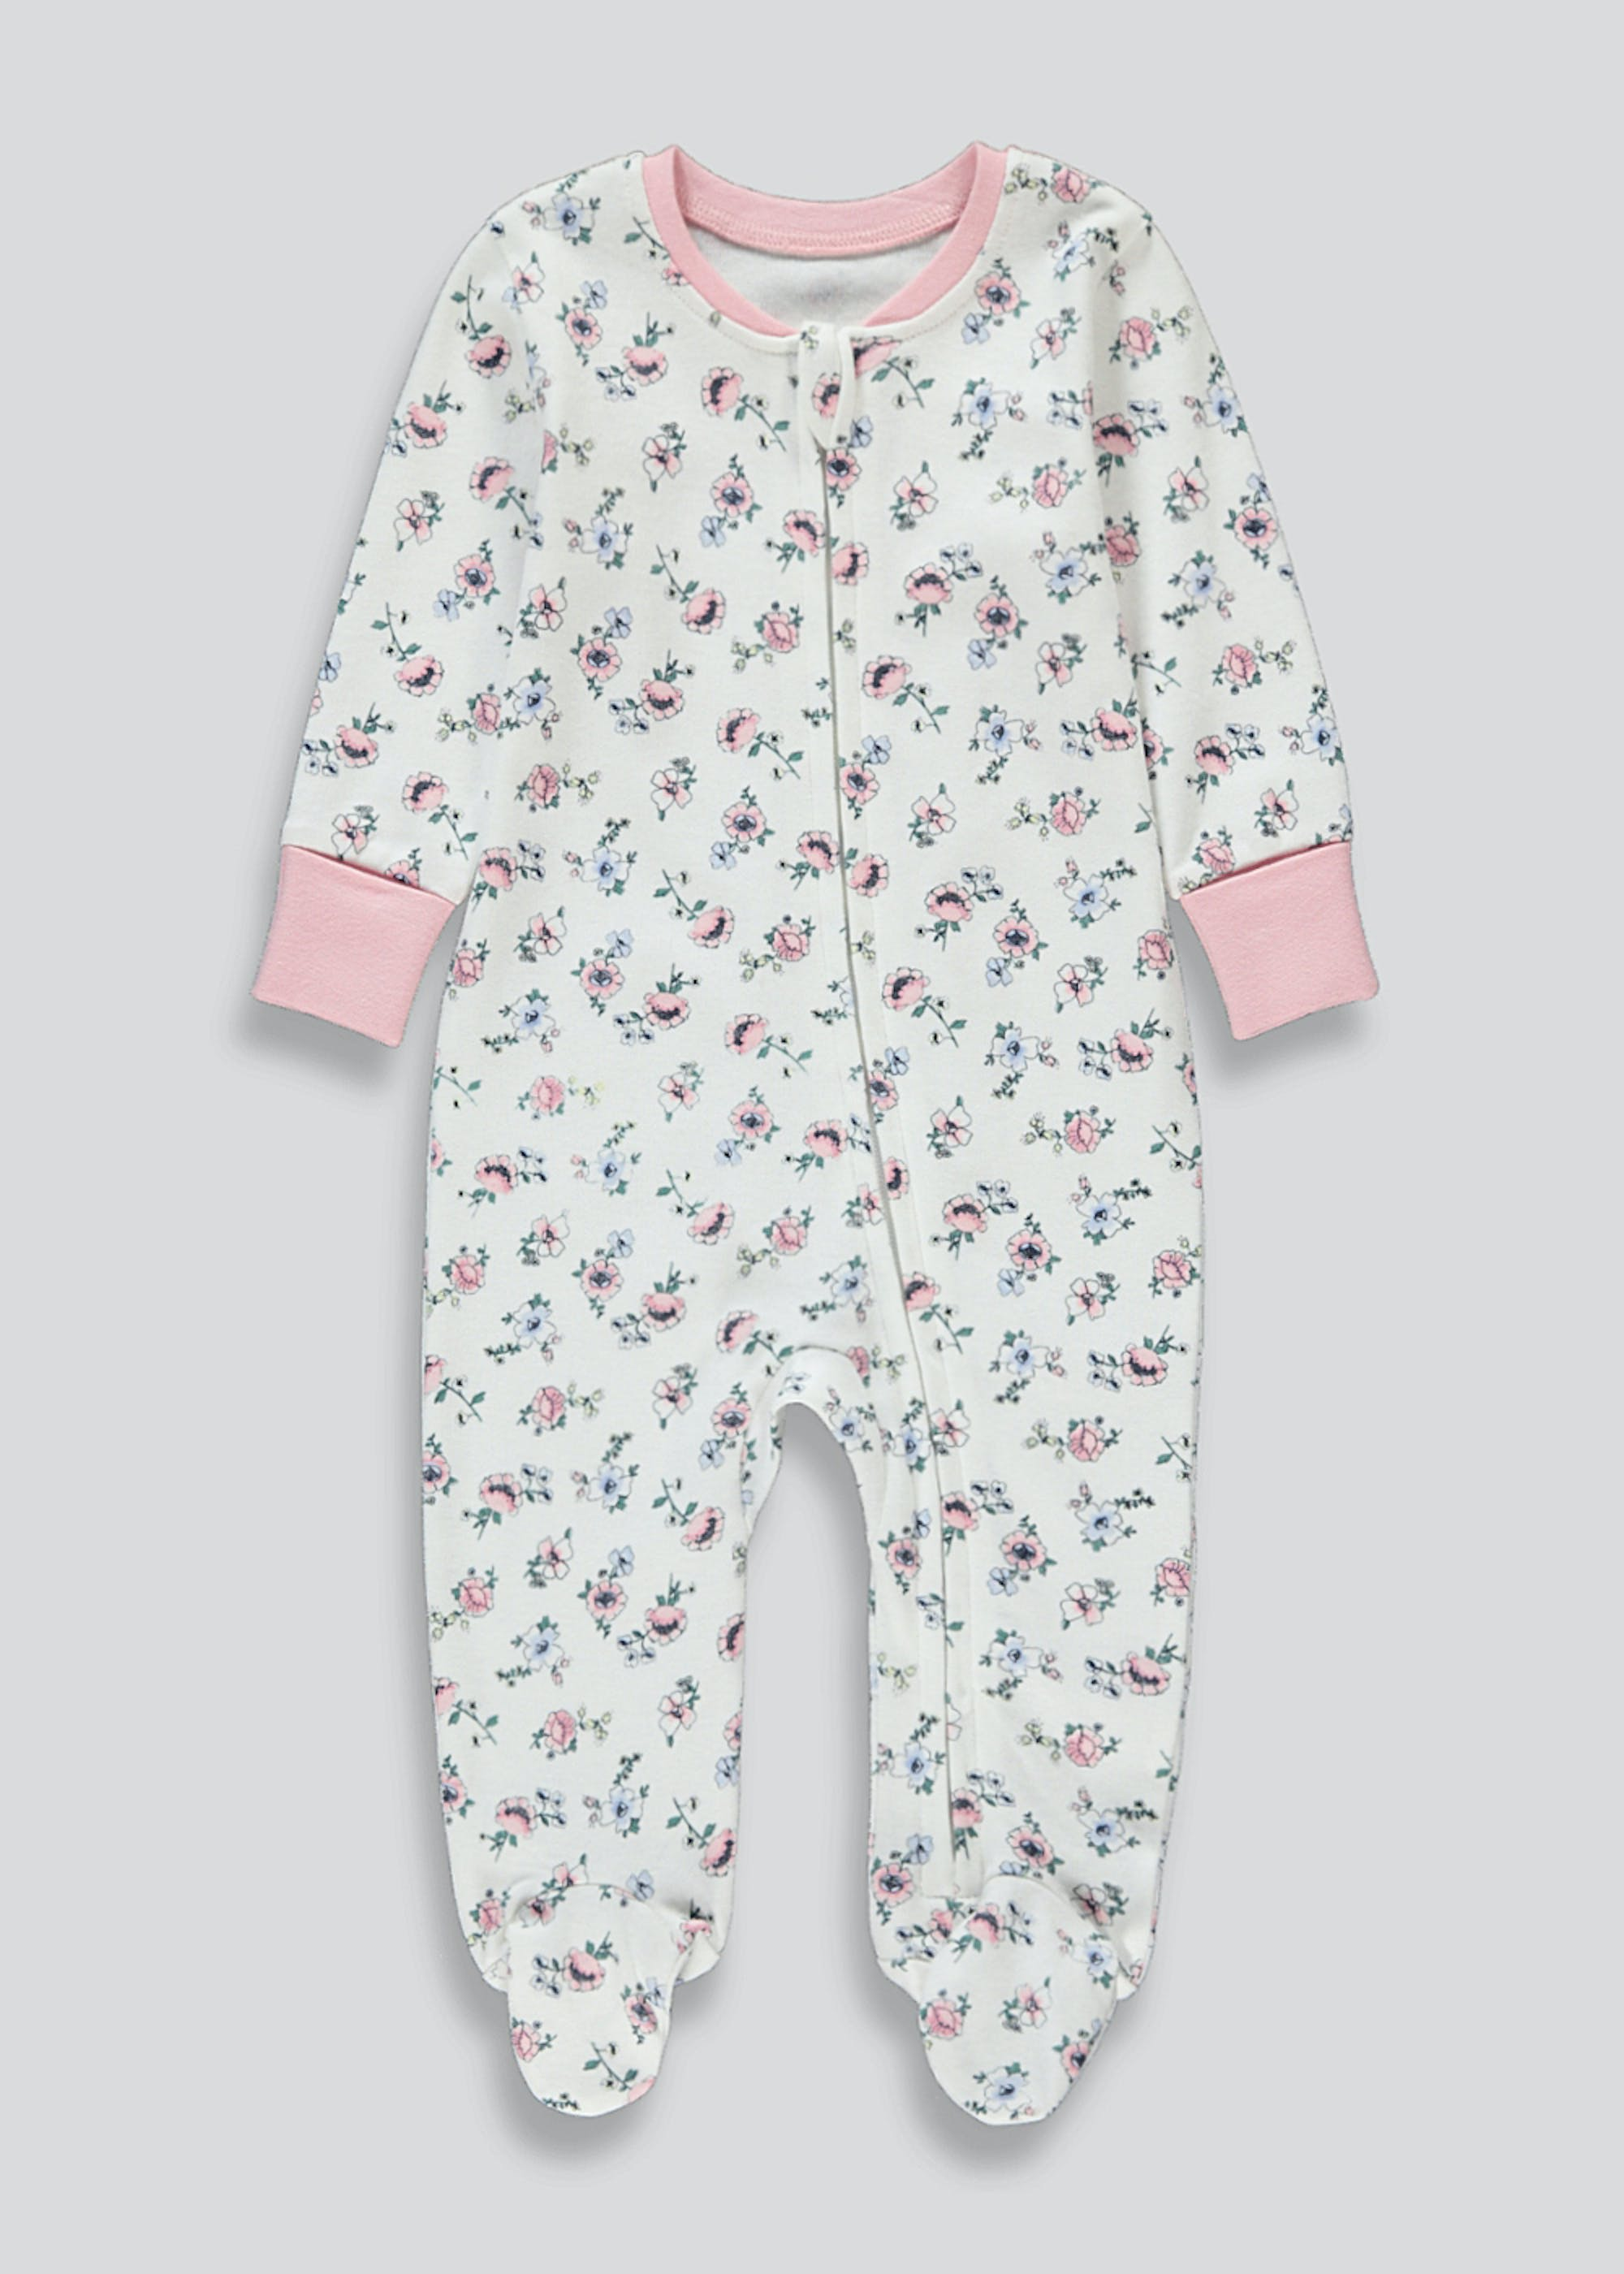 Girls Floral Zip Up Baby Grow (Tiny Baby-4mths)